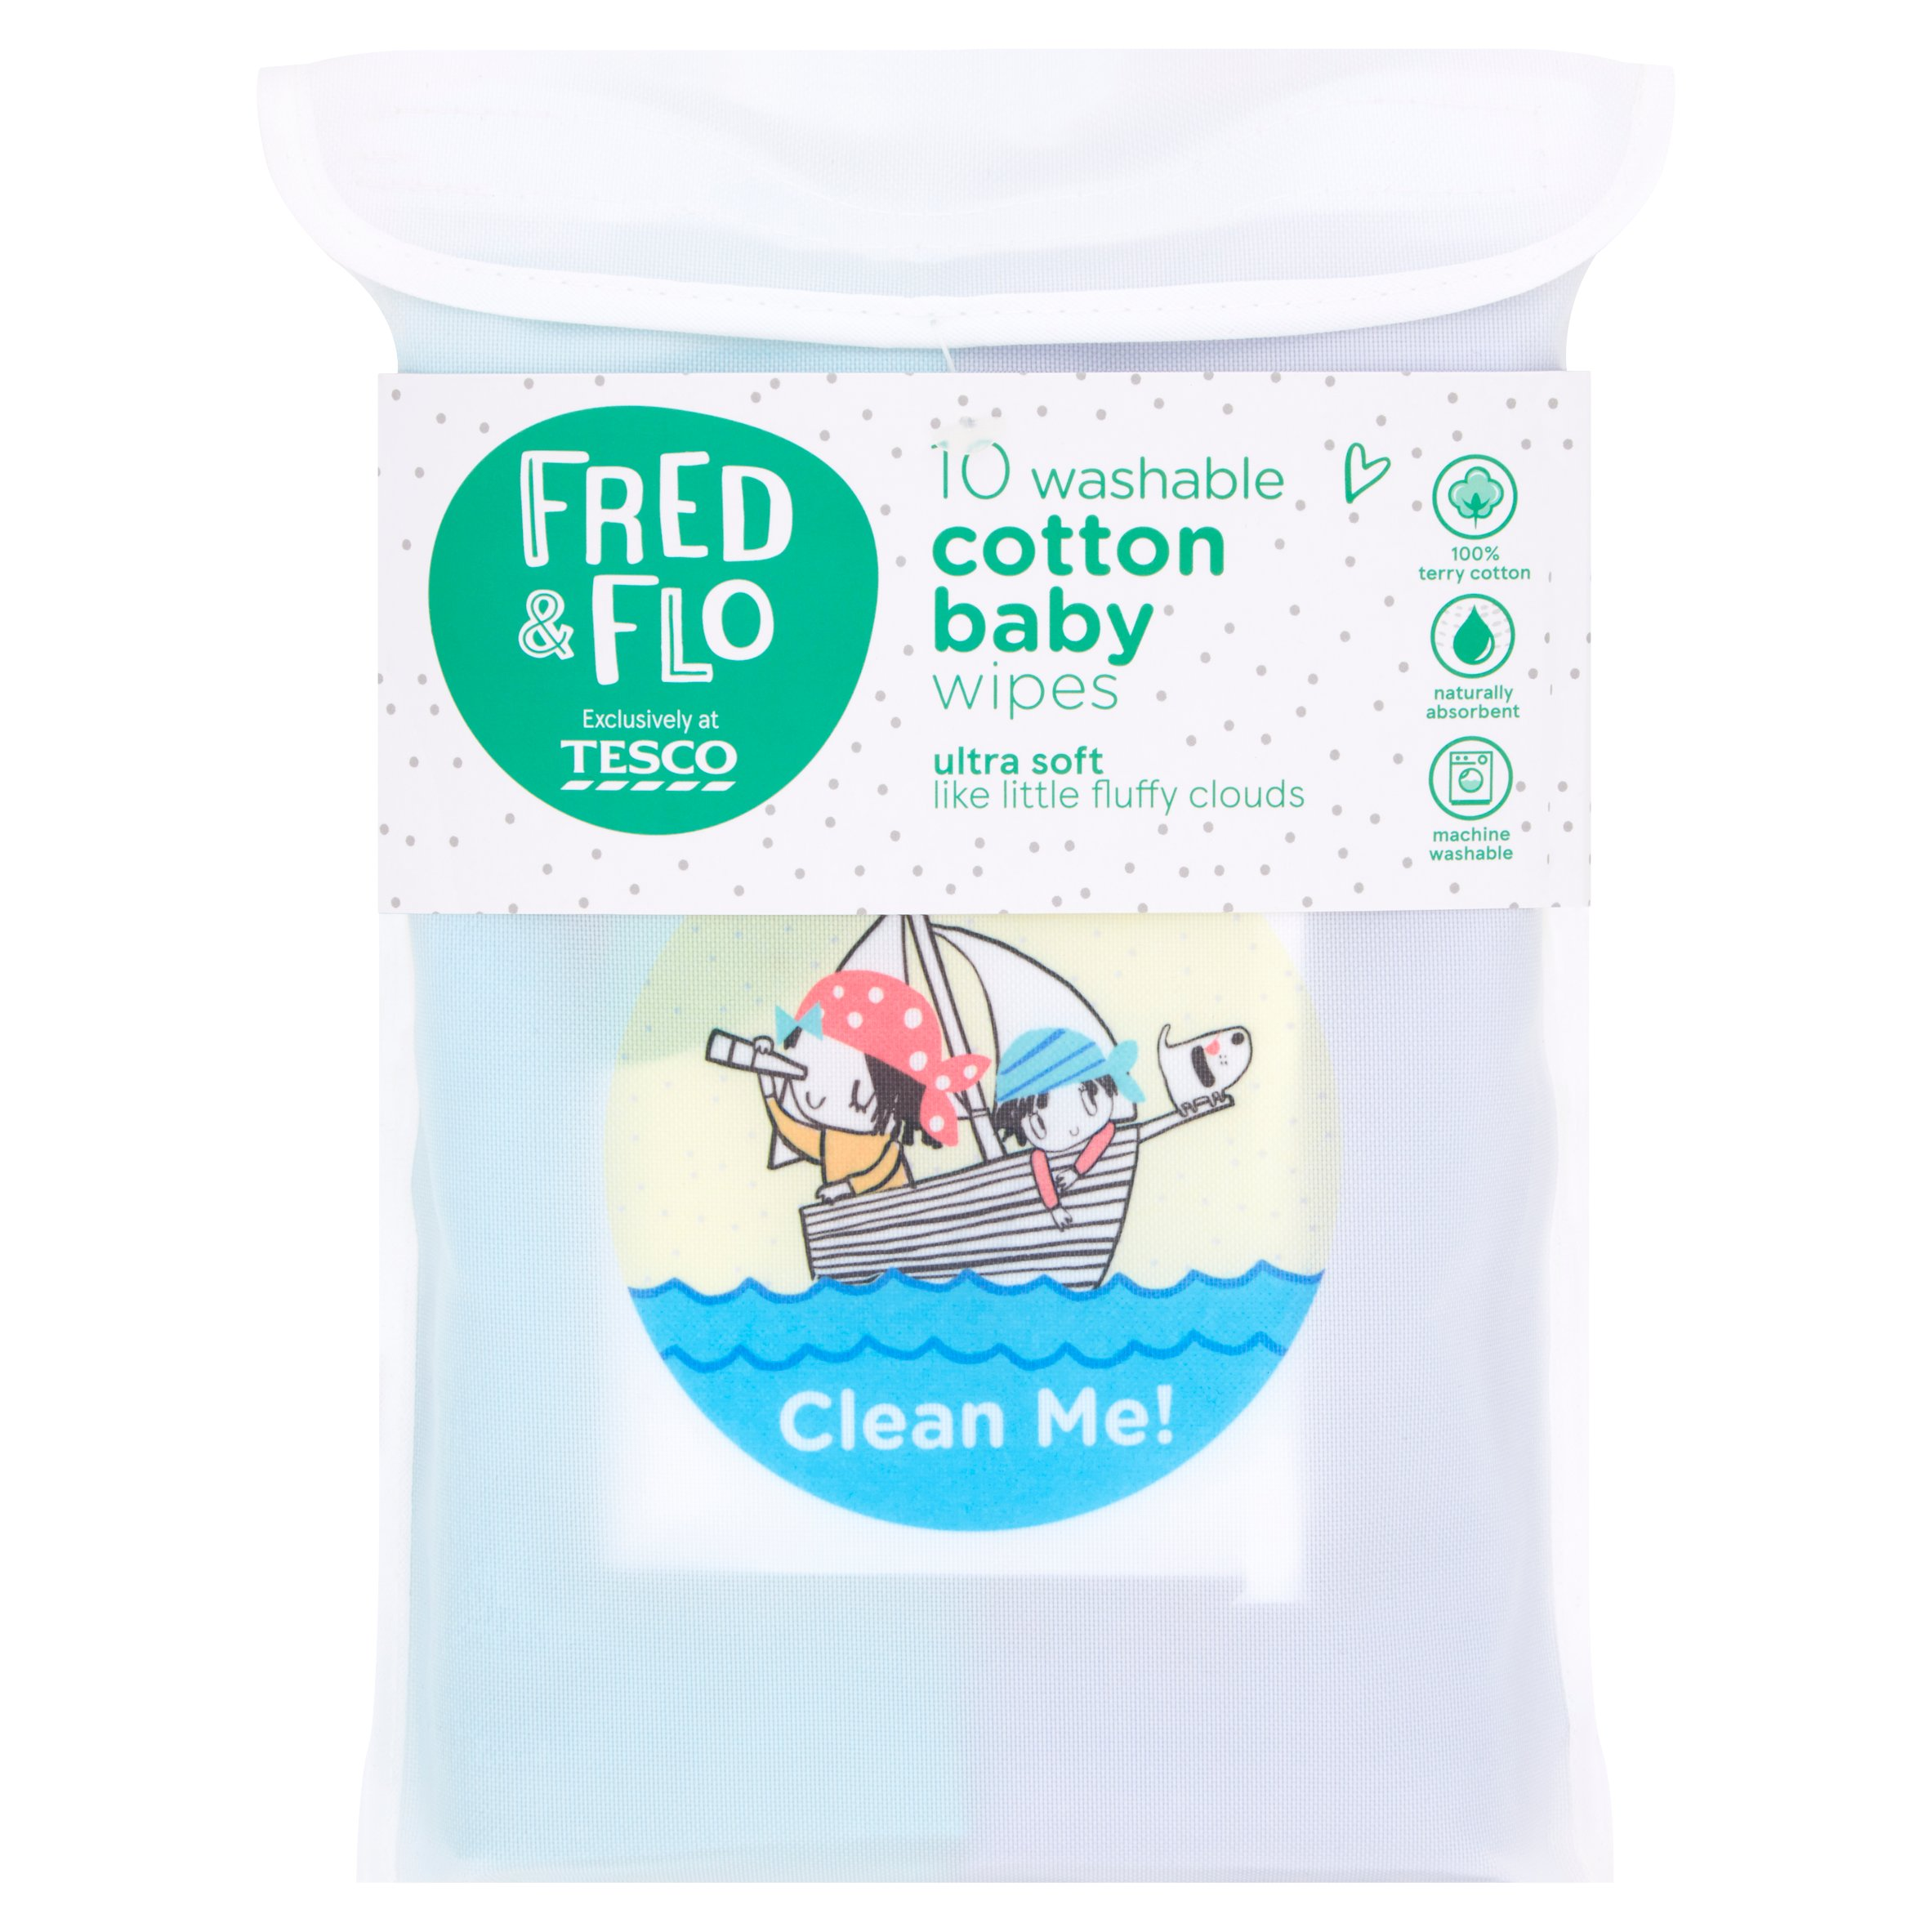 Fred & Flo 10 Washable Hand & Face Wipes